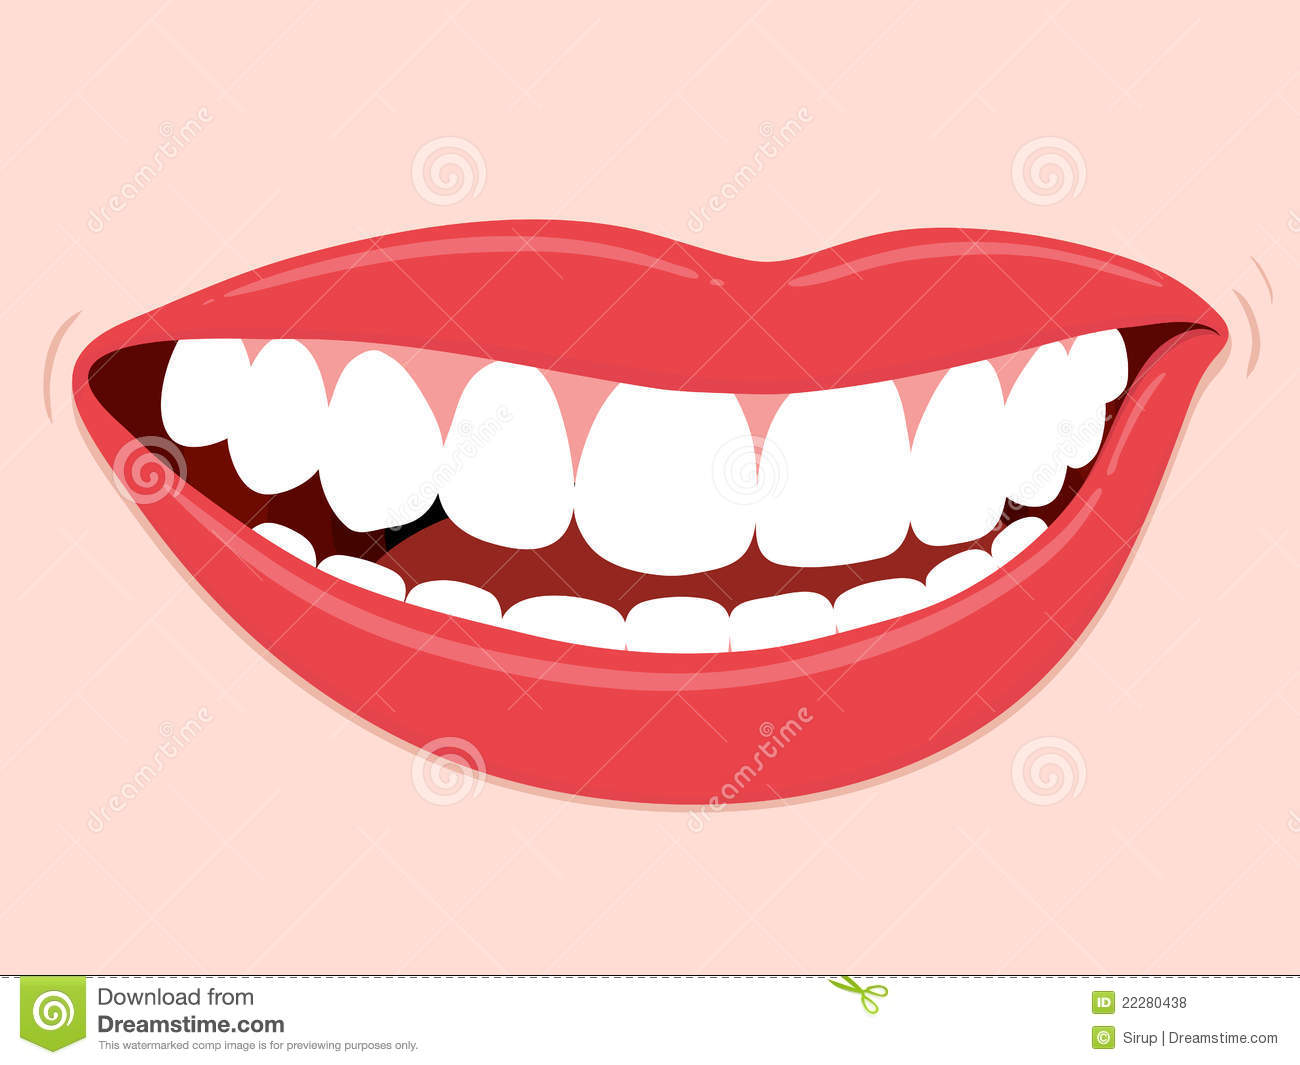 Dents saines de sourire de bouche illustration de vecteur - Bouche en dessin ...